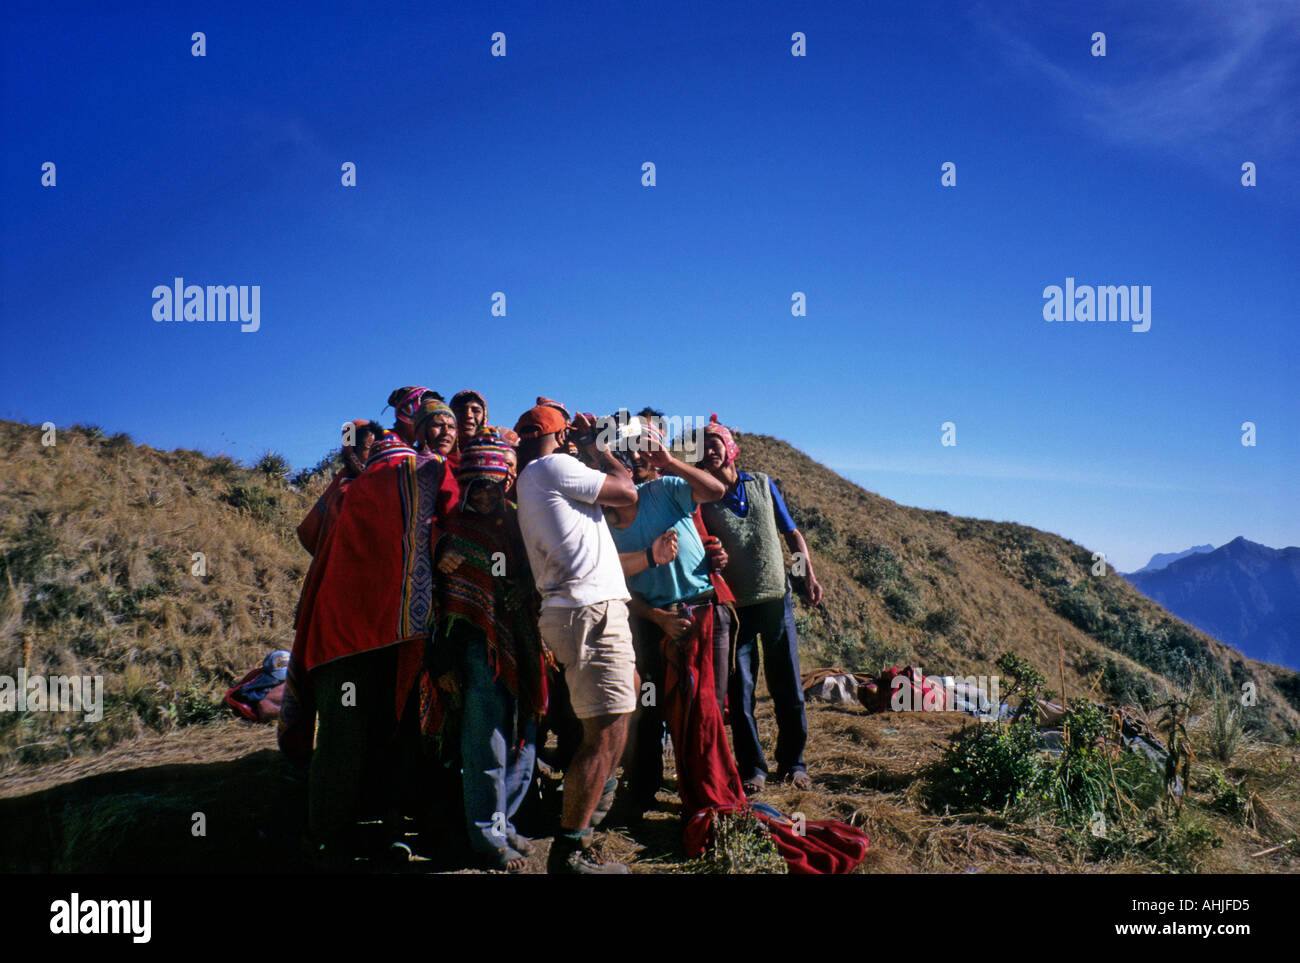 Inca Trail, Peru. Group of porters gathers around to watch playback on tourist videocamera at Phuyupatamarca campsite. - Stock Image